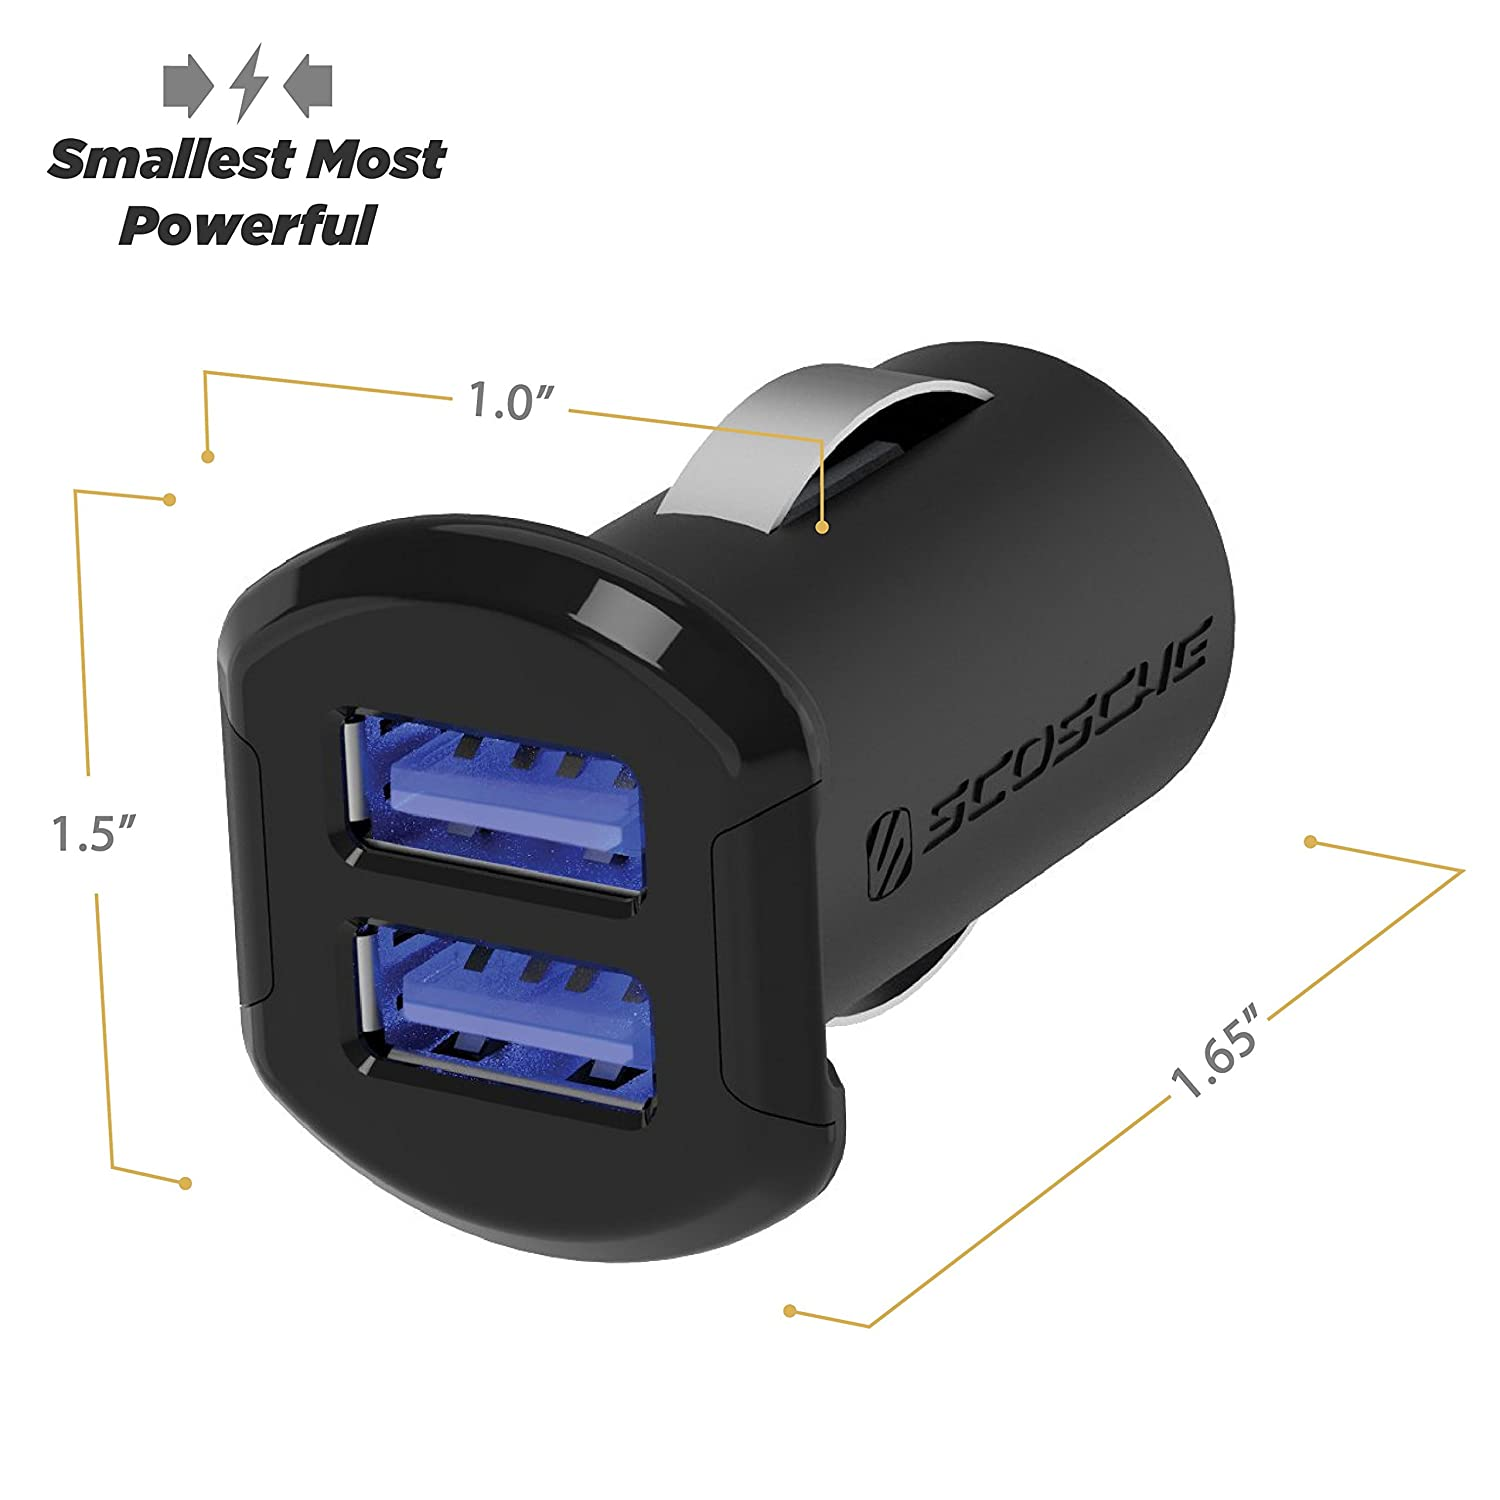 c9d9bce16c24a2 ... Port USB Fast Car Charger with Illuminated LED Backlight - 12 Watts/2.4  Amps Per Port (24W/4.8A Total Output) - High Speed Universal Multi Device  Mobile ...